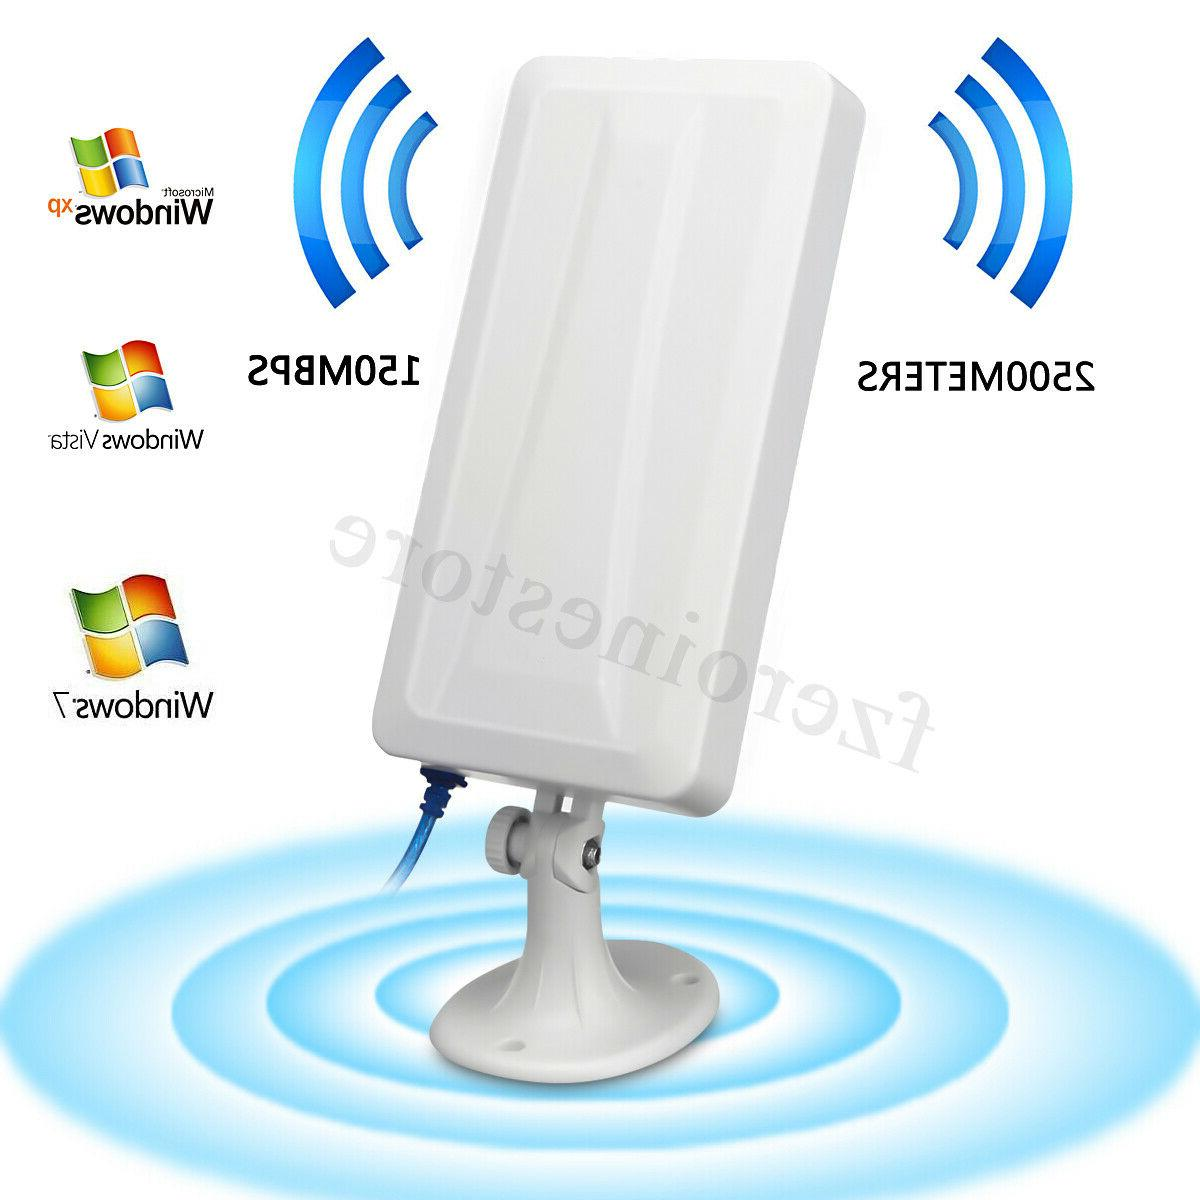 WiFi Wireless Antenna